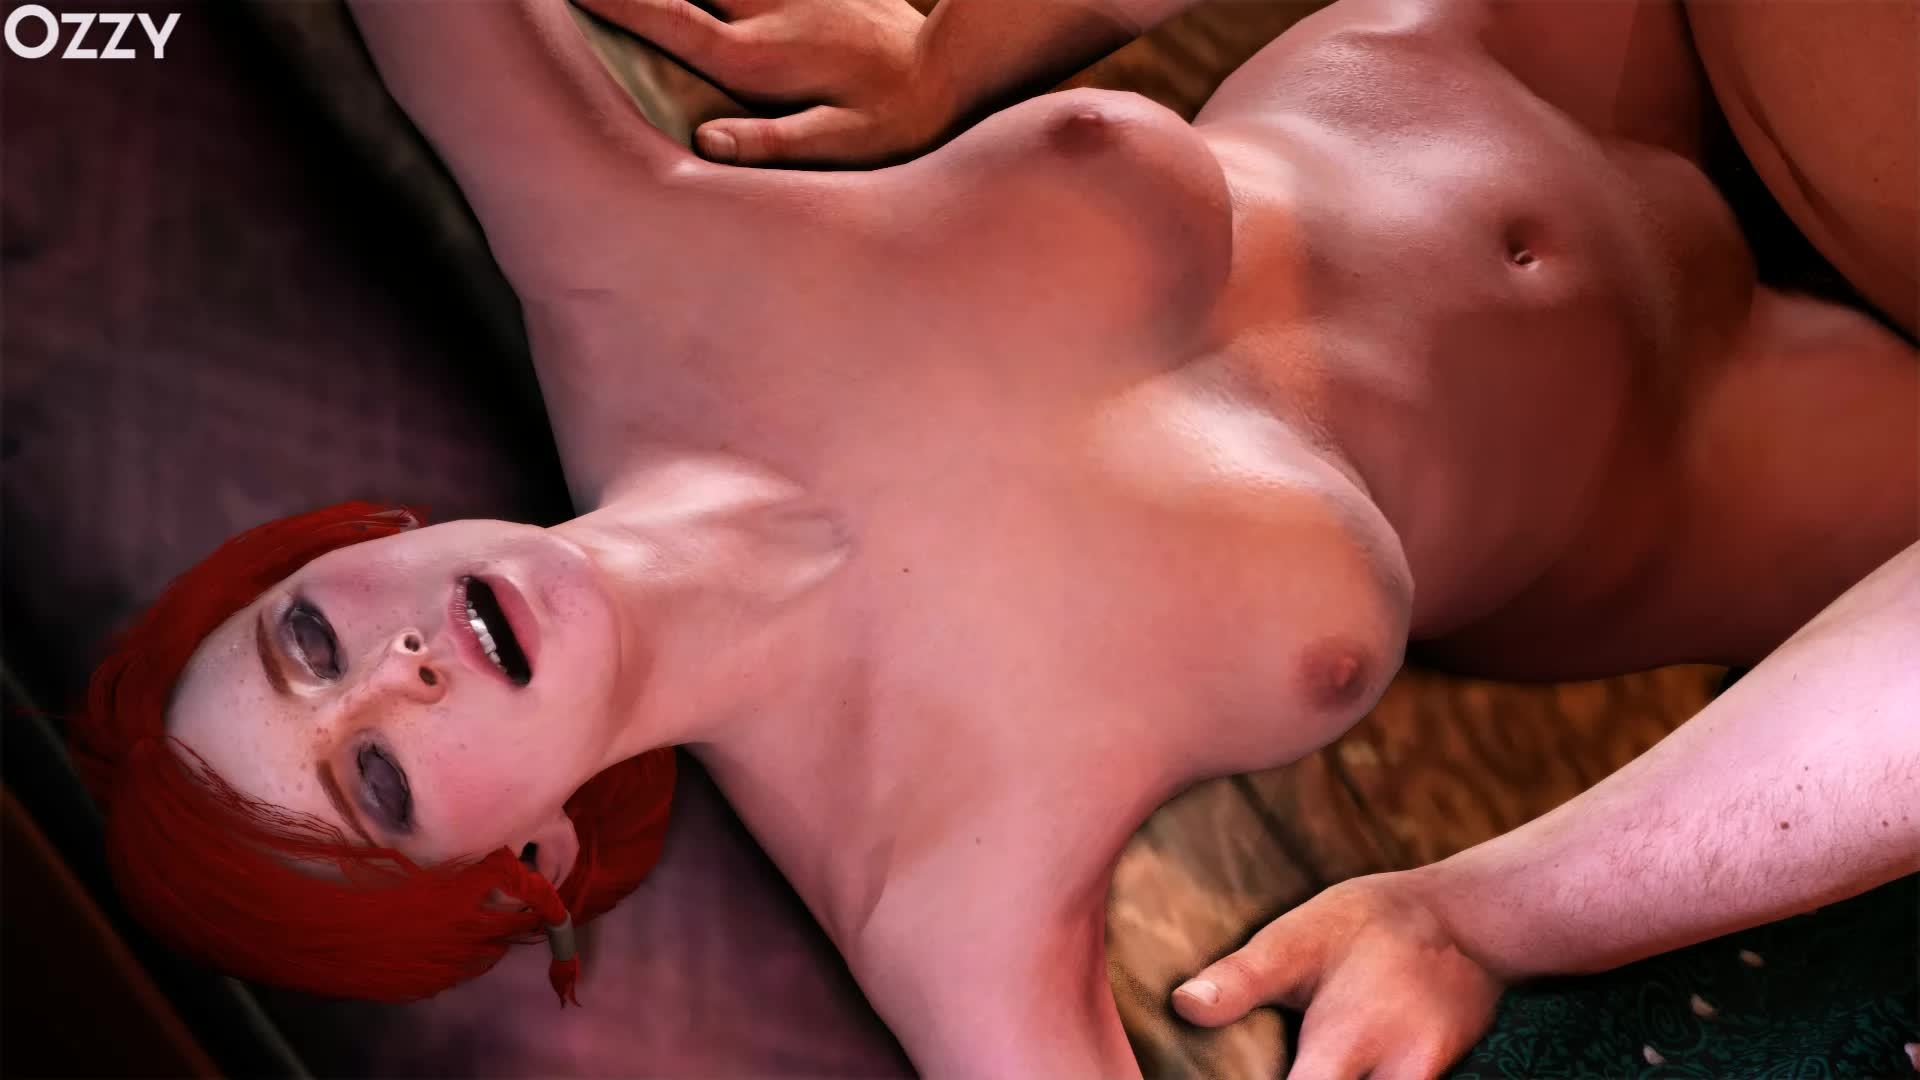 The witcher 3 sex gif hentai image